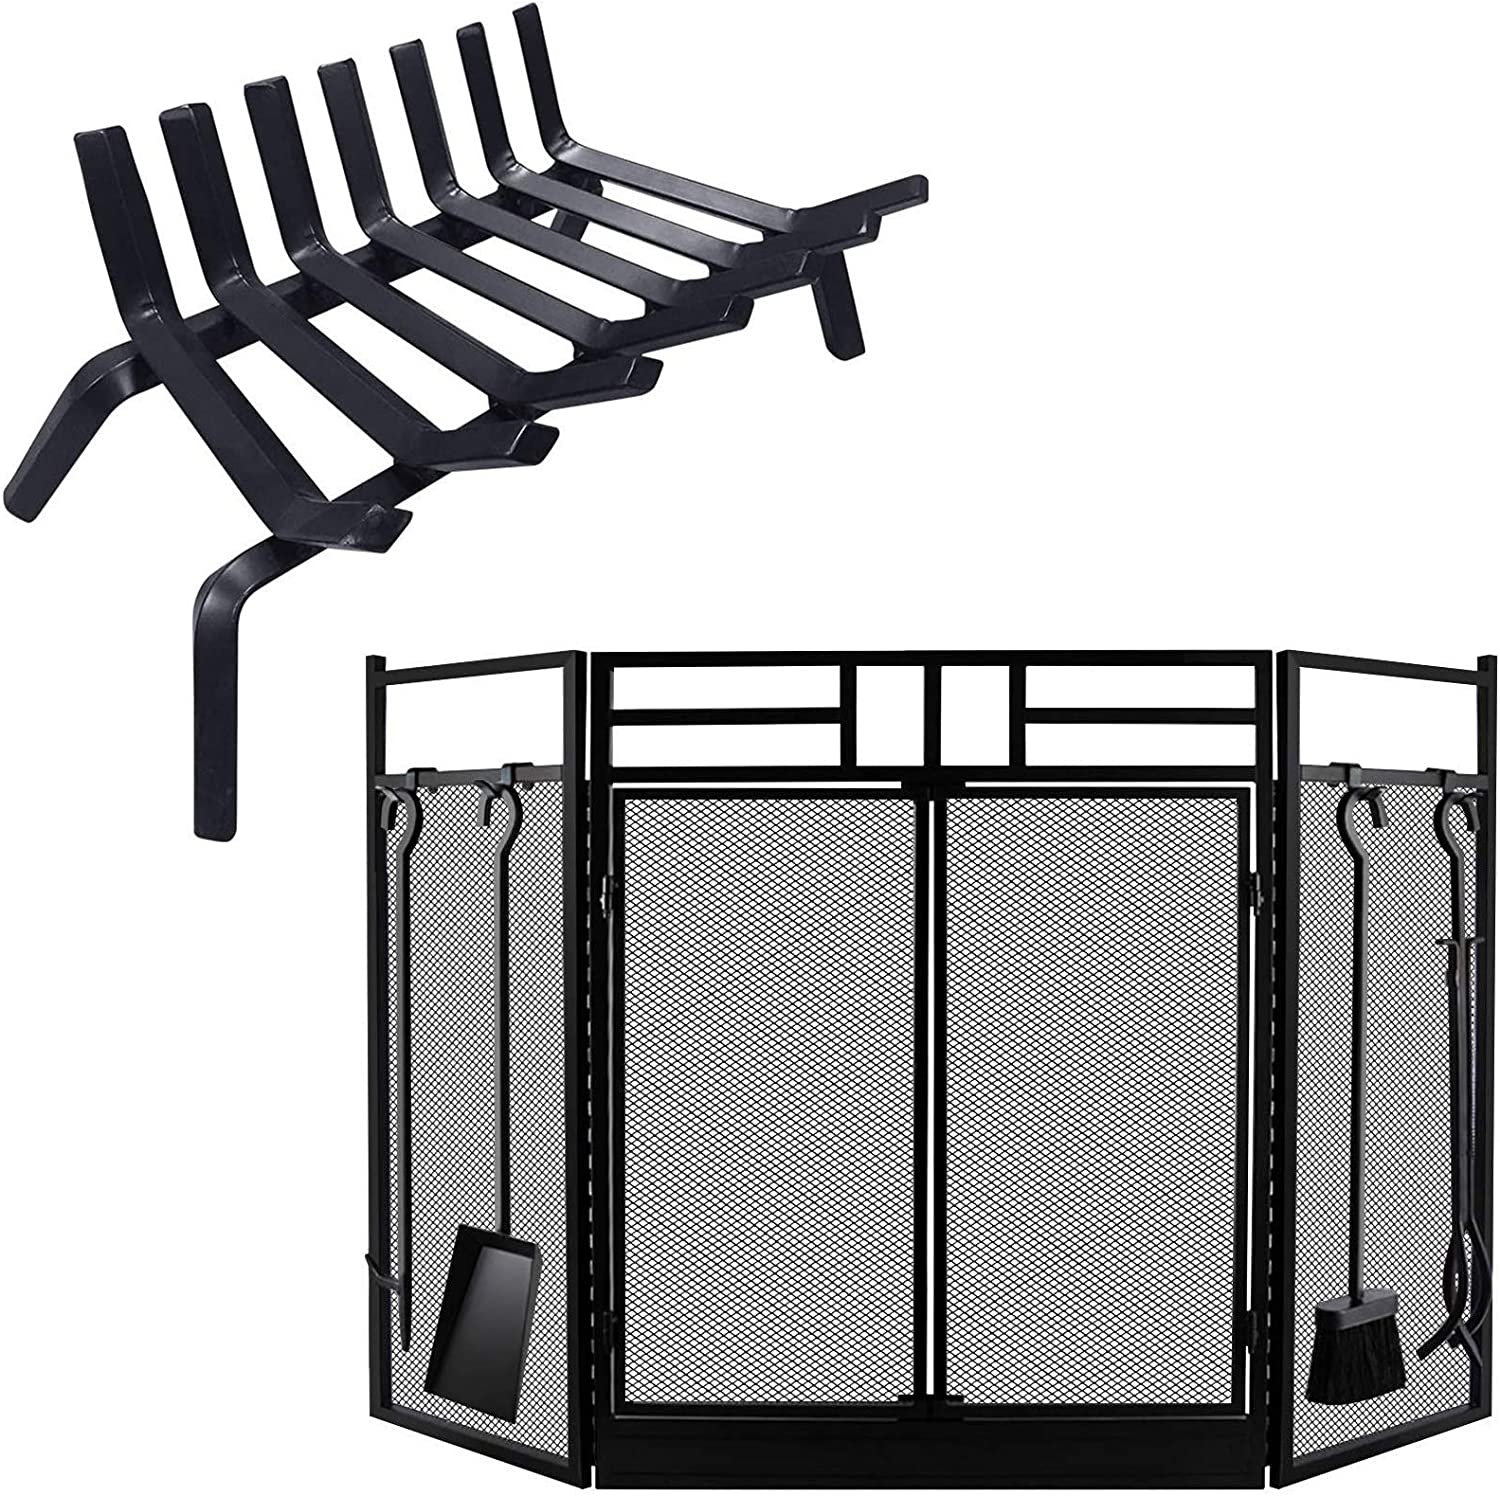 Amagabeli Black Wrought Denver Mall Iron Fireplace Grate Challenge the lowest price of Japan ☆ inch Log Bundle 21